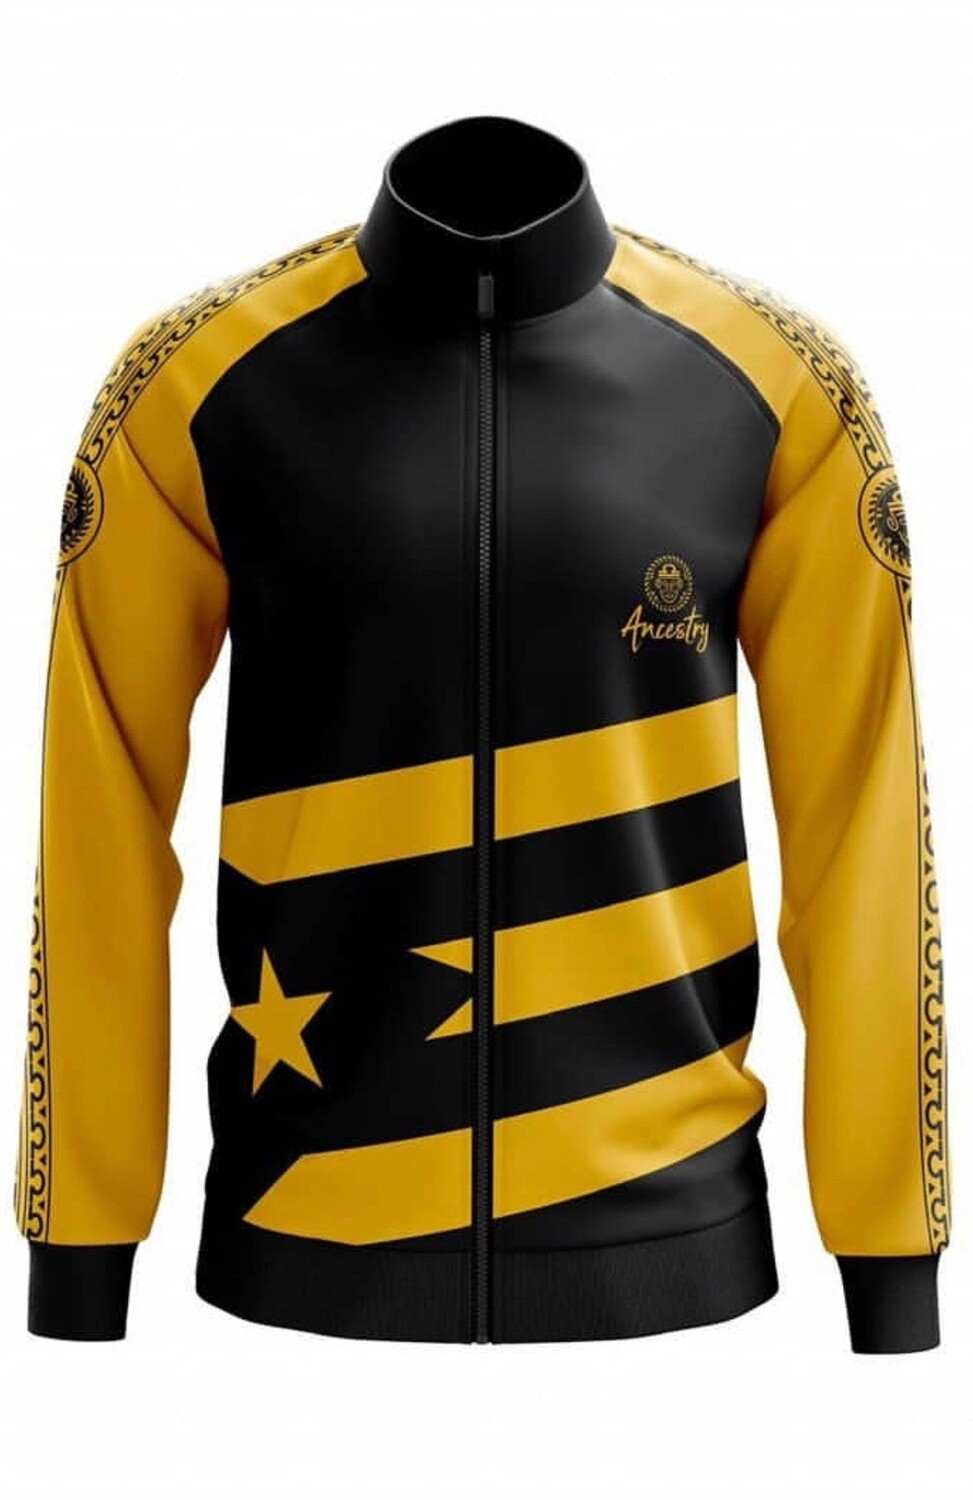 Ancestry - Black & Yellow PR Flag Jacket